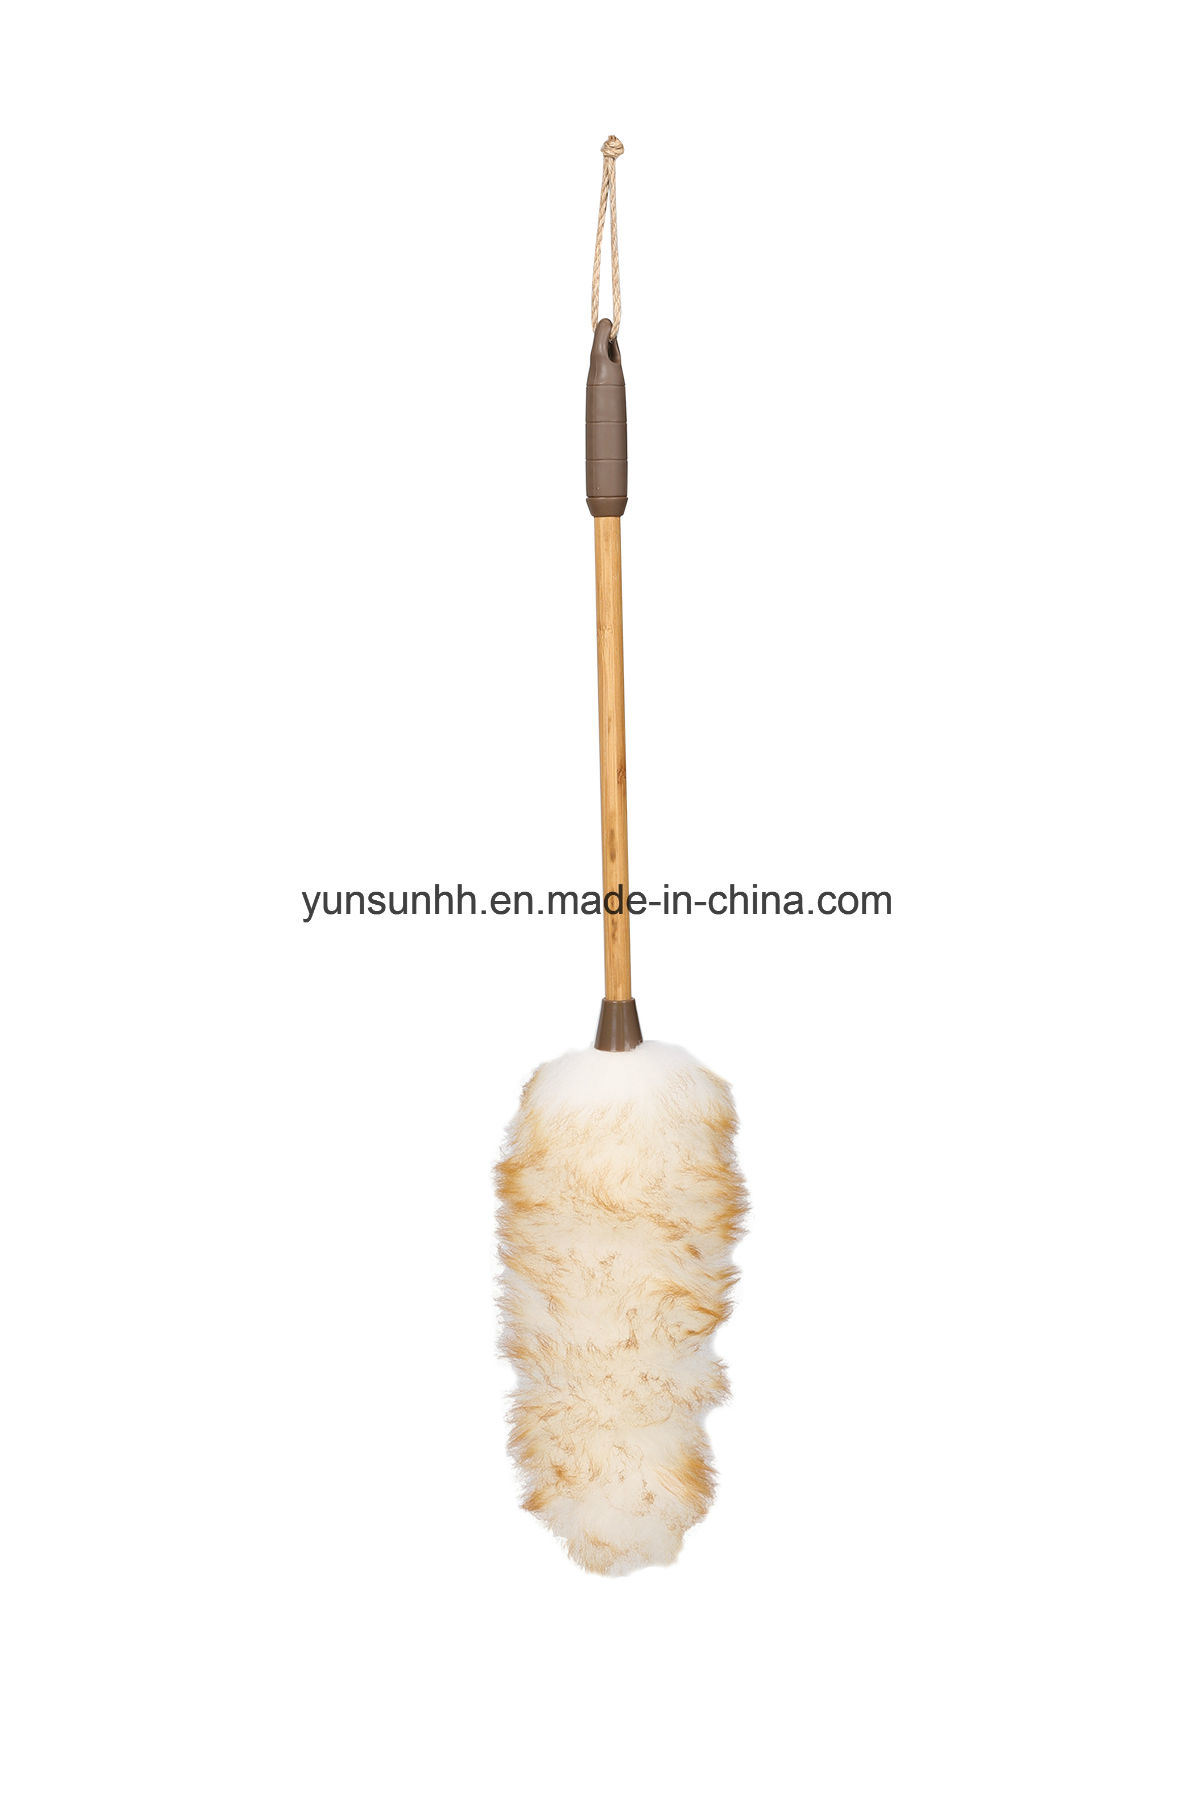 Sheep Wool Duster with Bamboo Handle